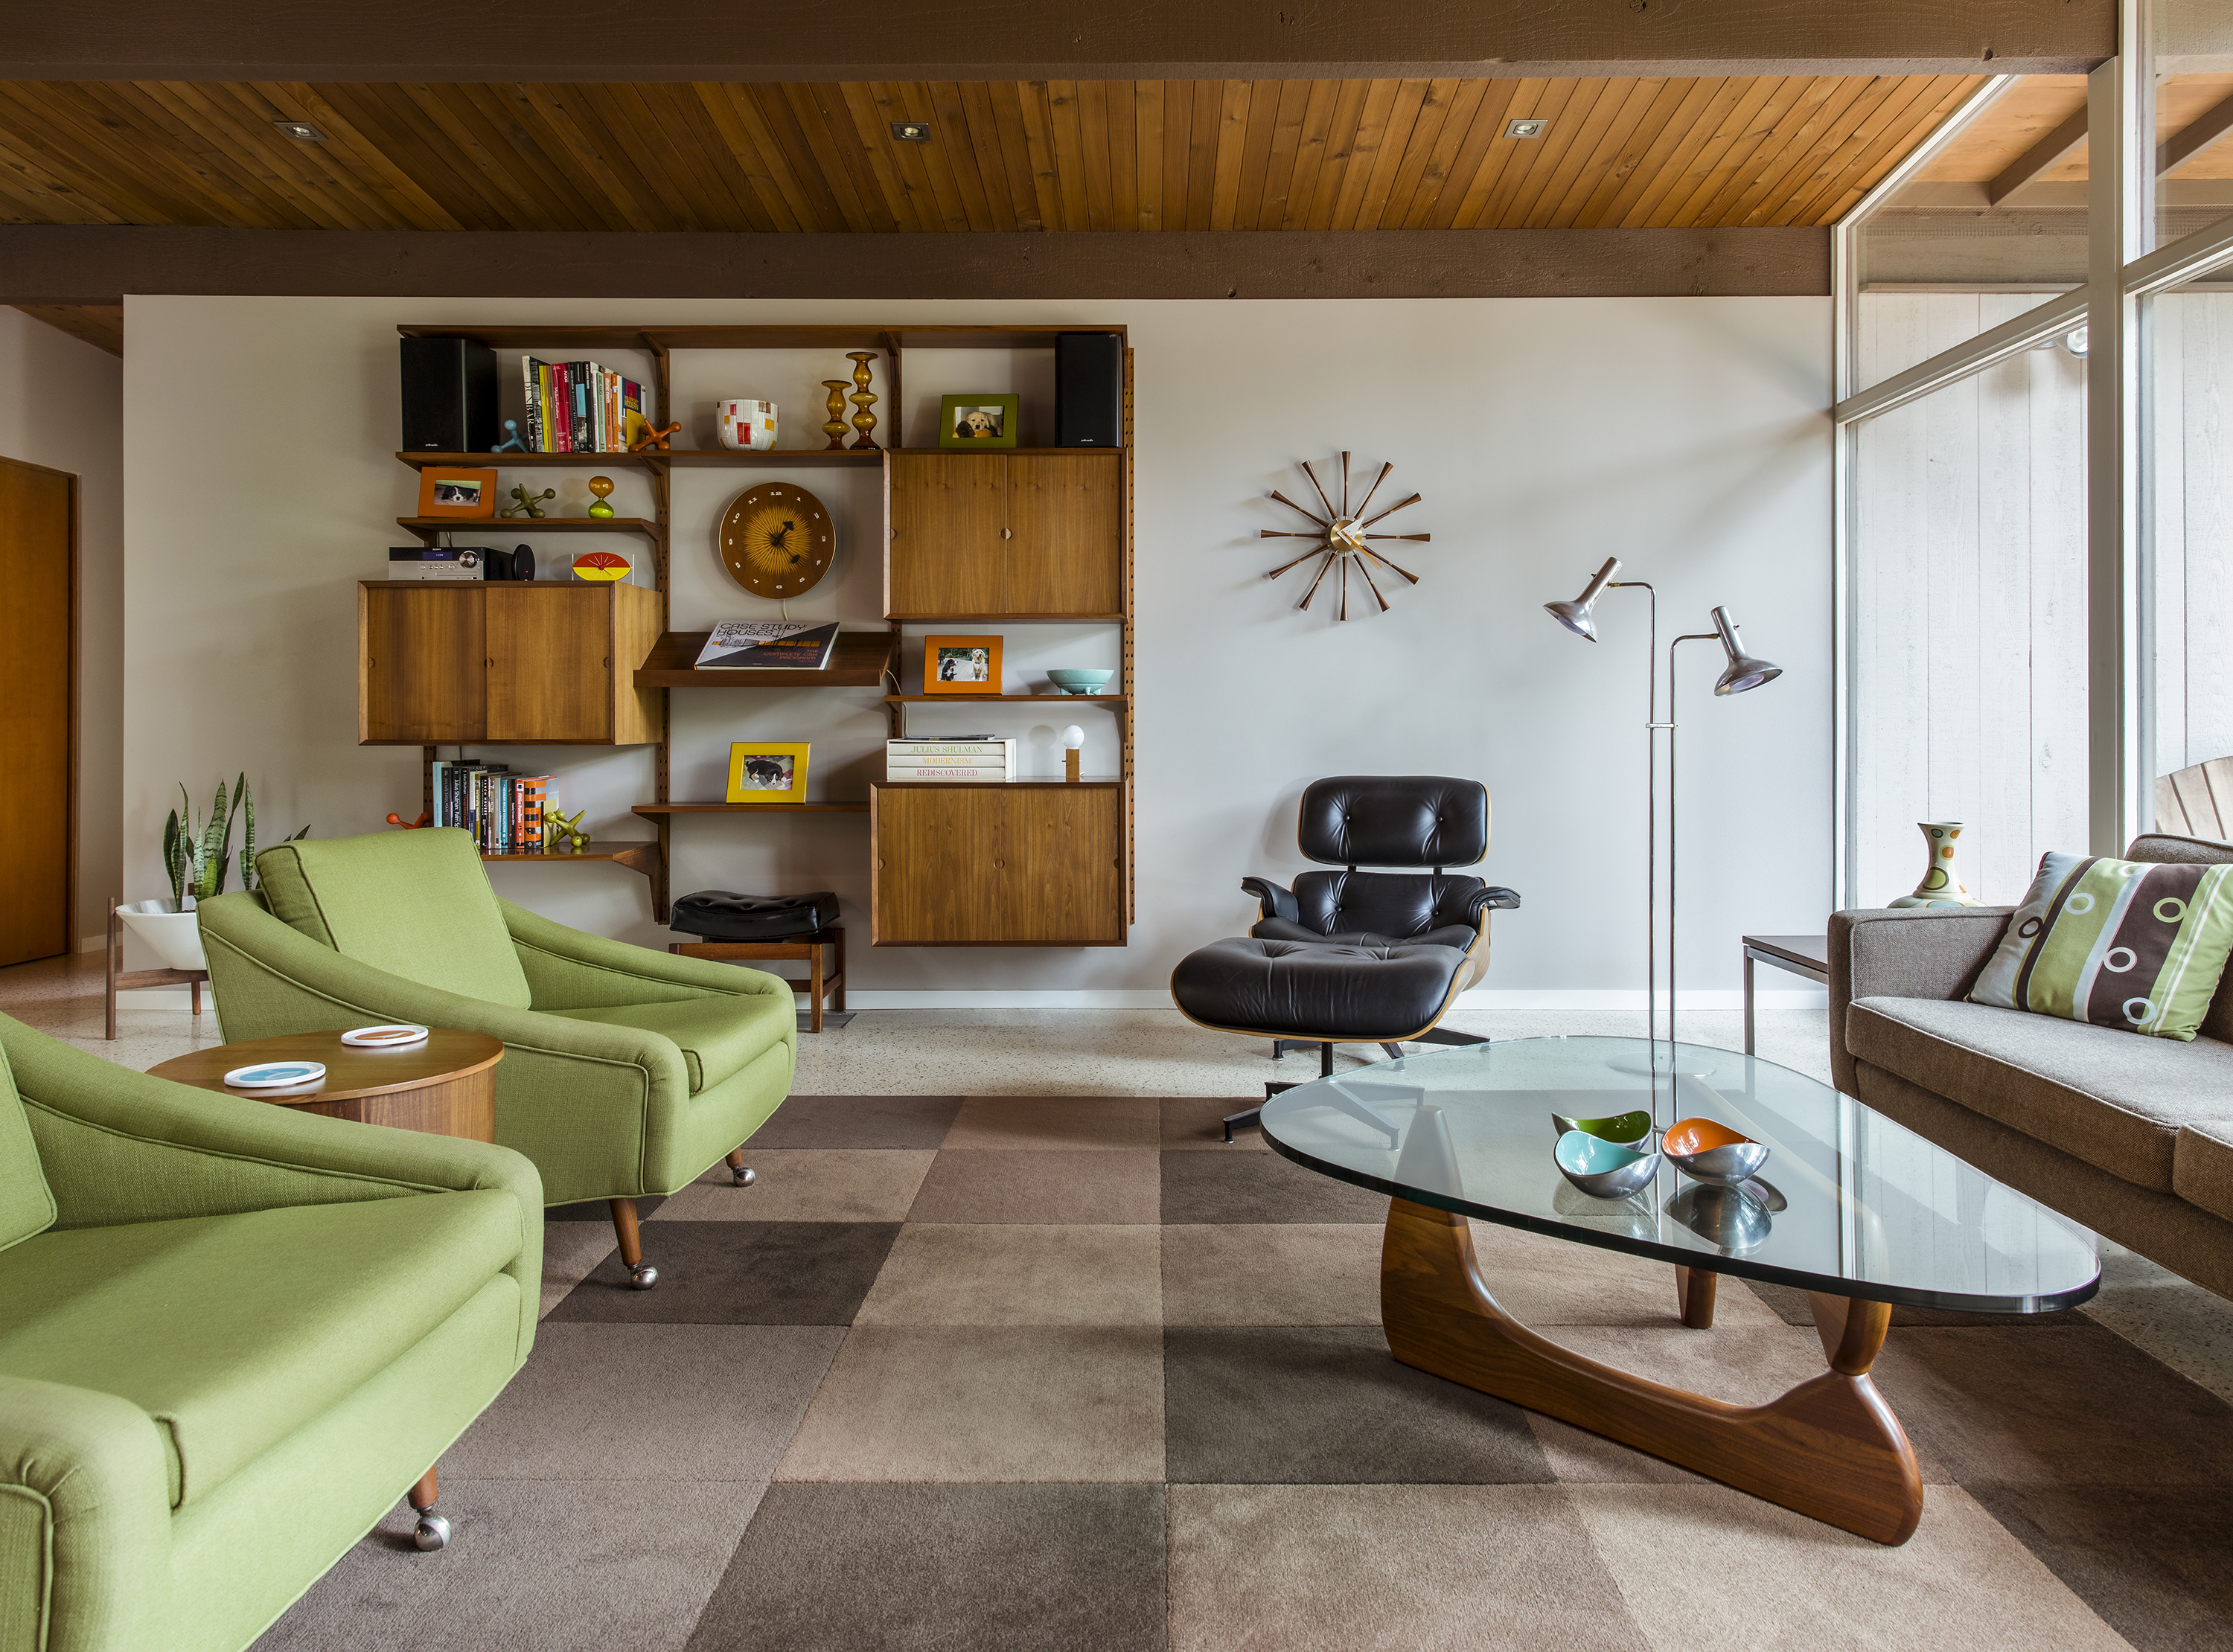 The living room is decorated with (mostly) vintage midcentury modern  furniture.